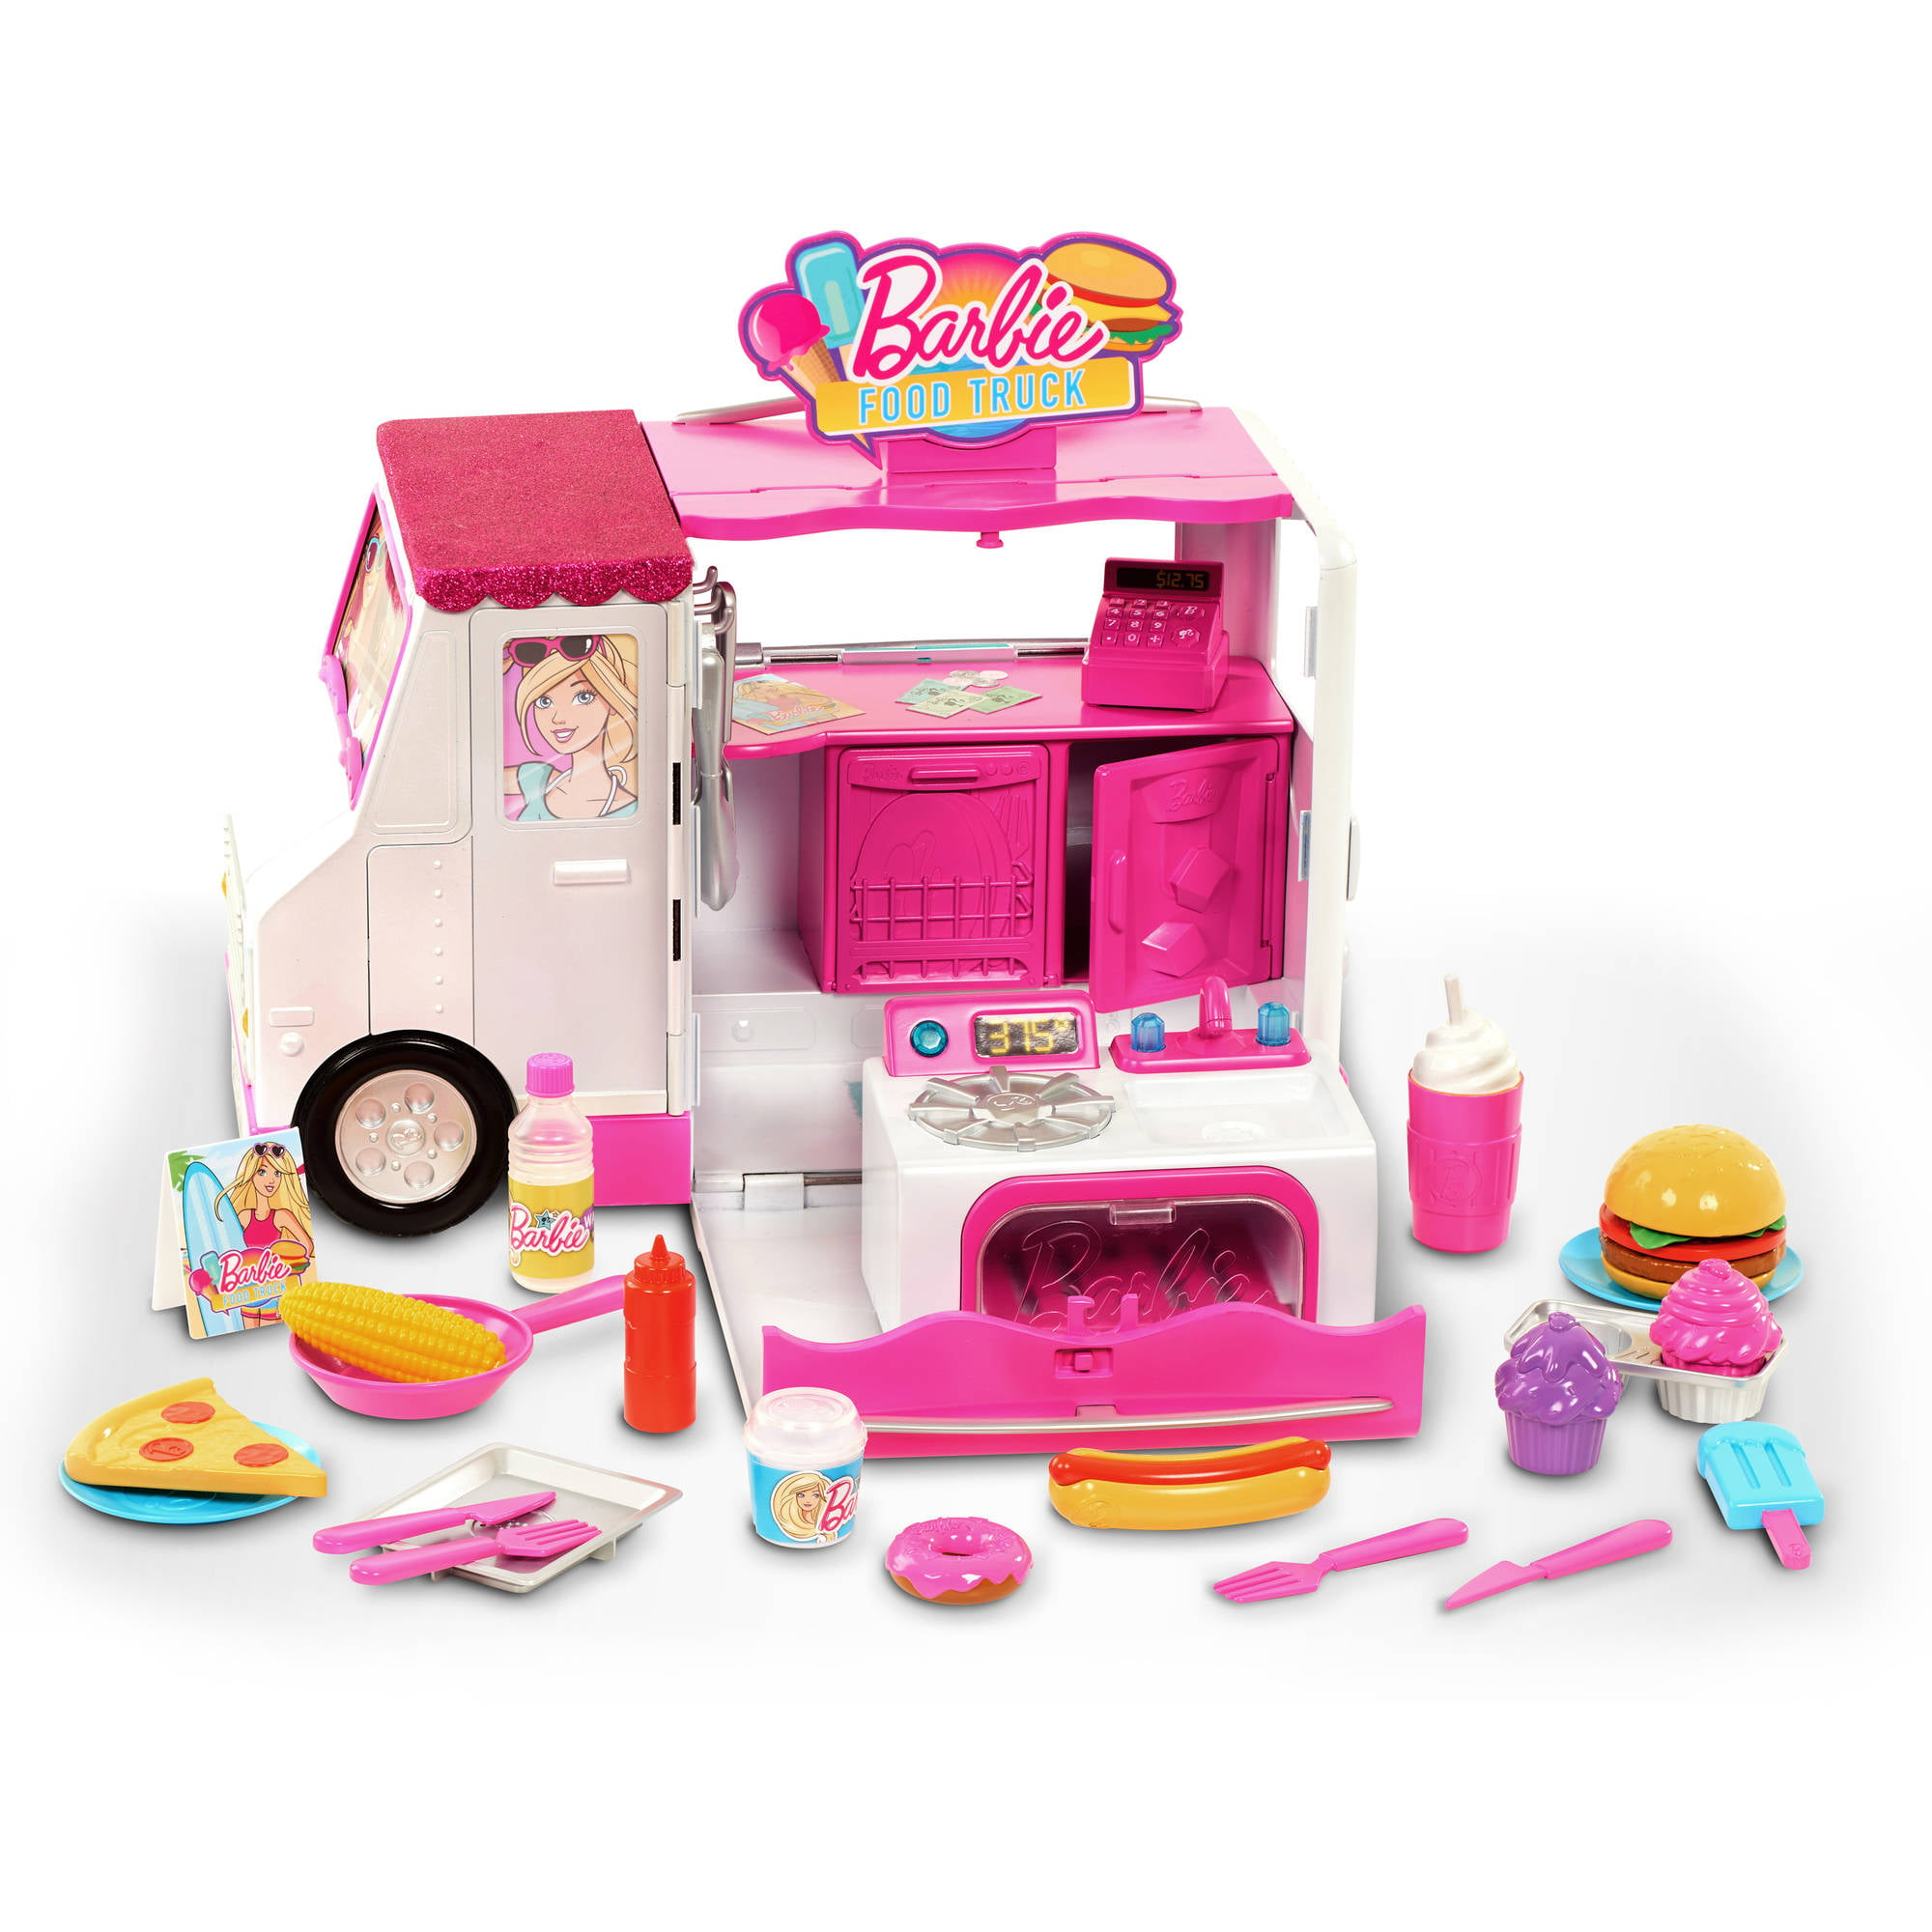 Food Toys For Girls : Barbie food truck play cooking tools girls kids